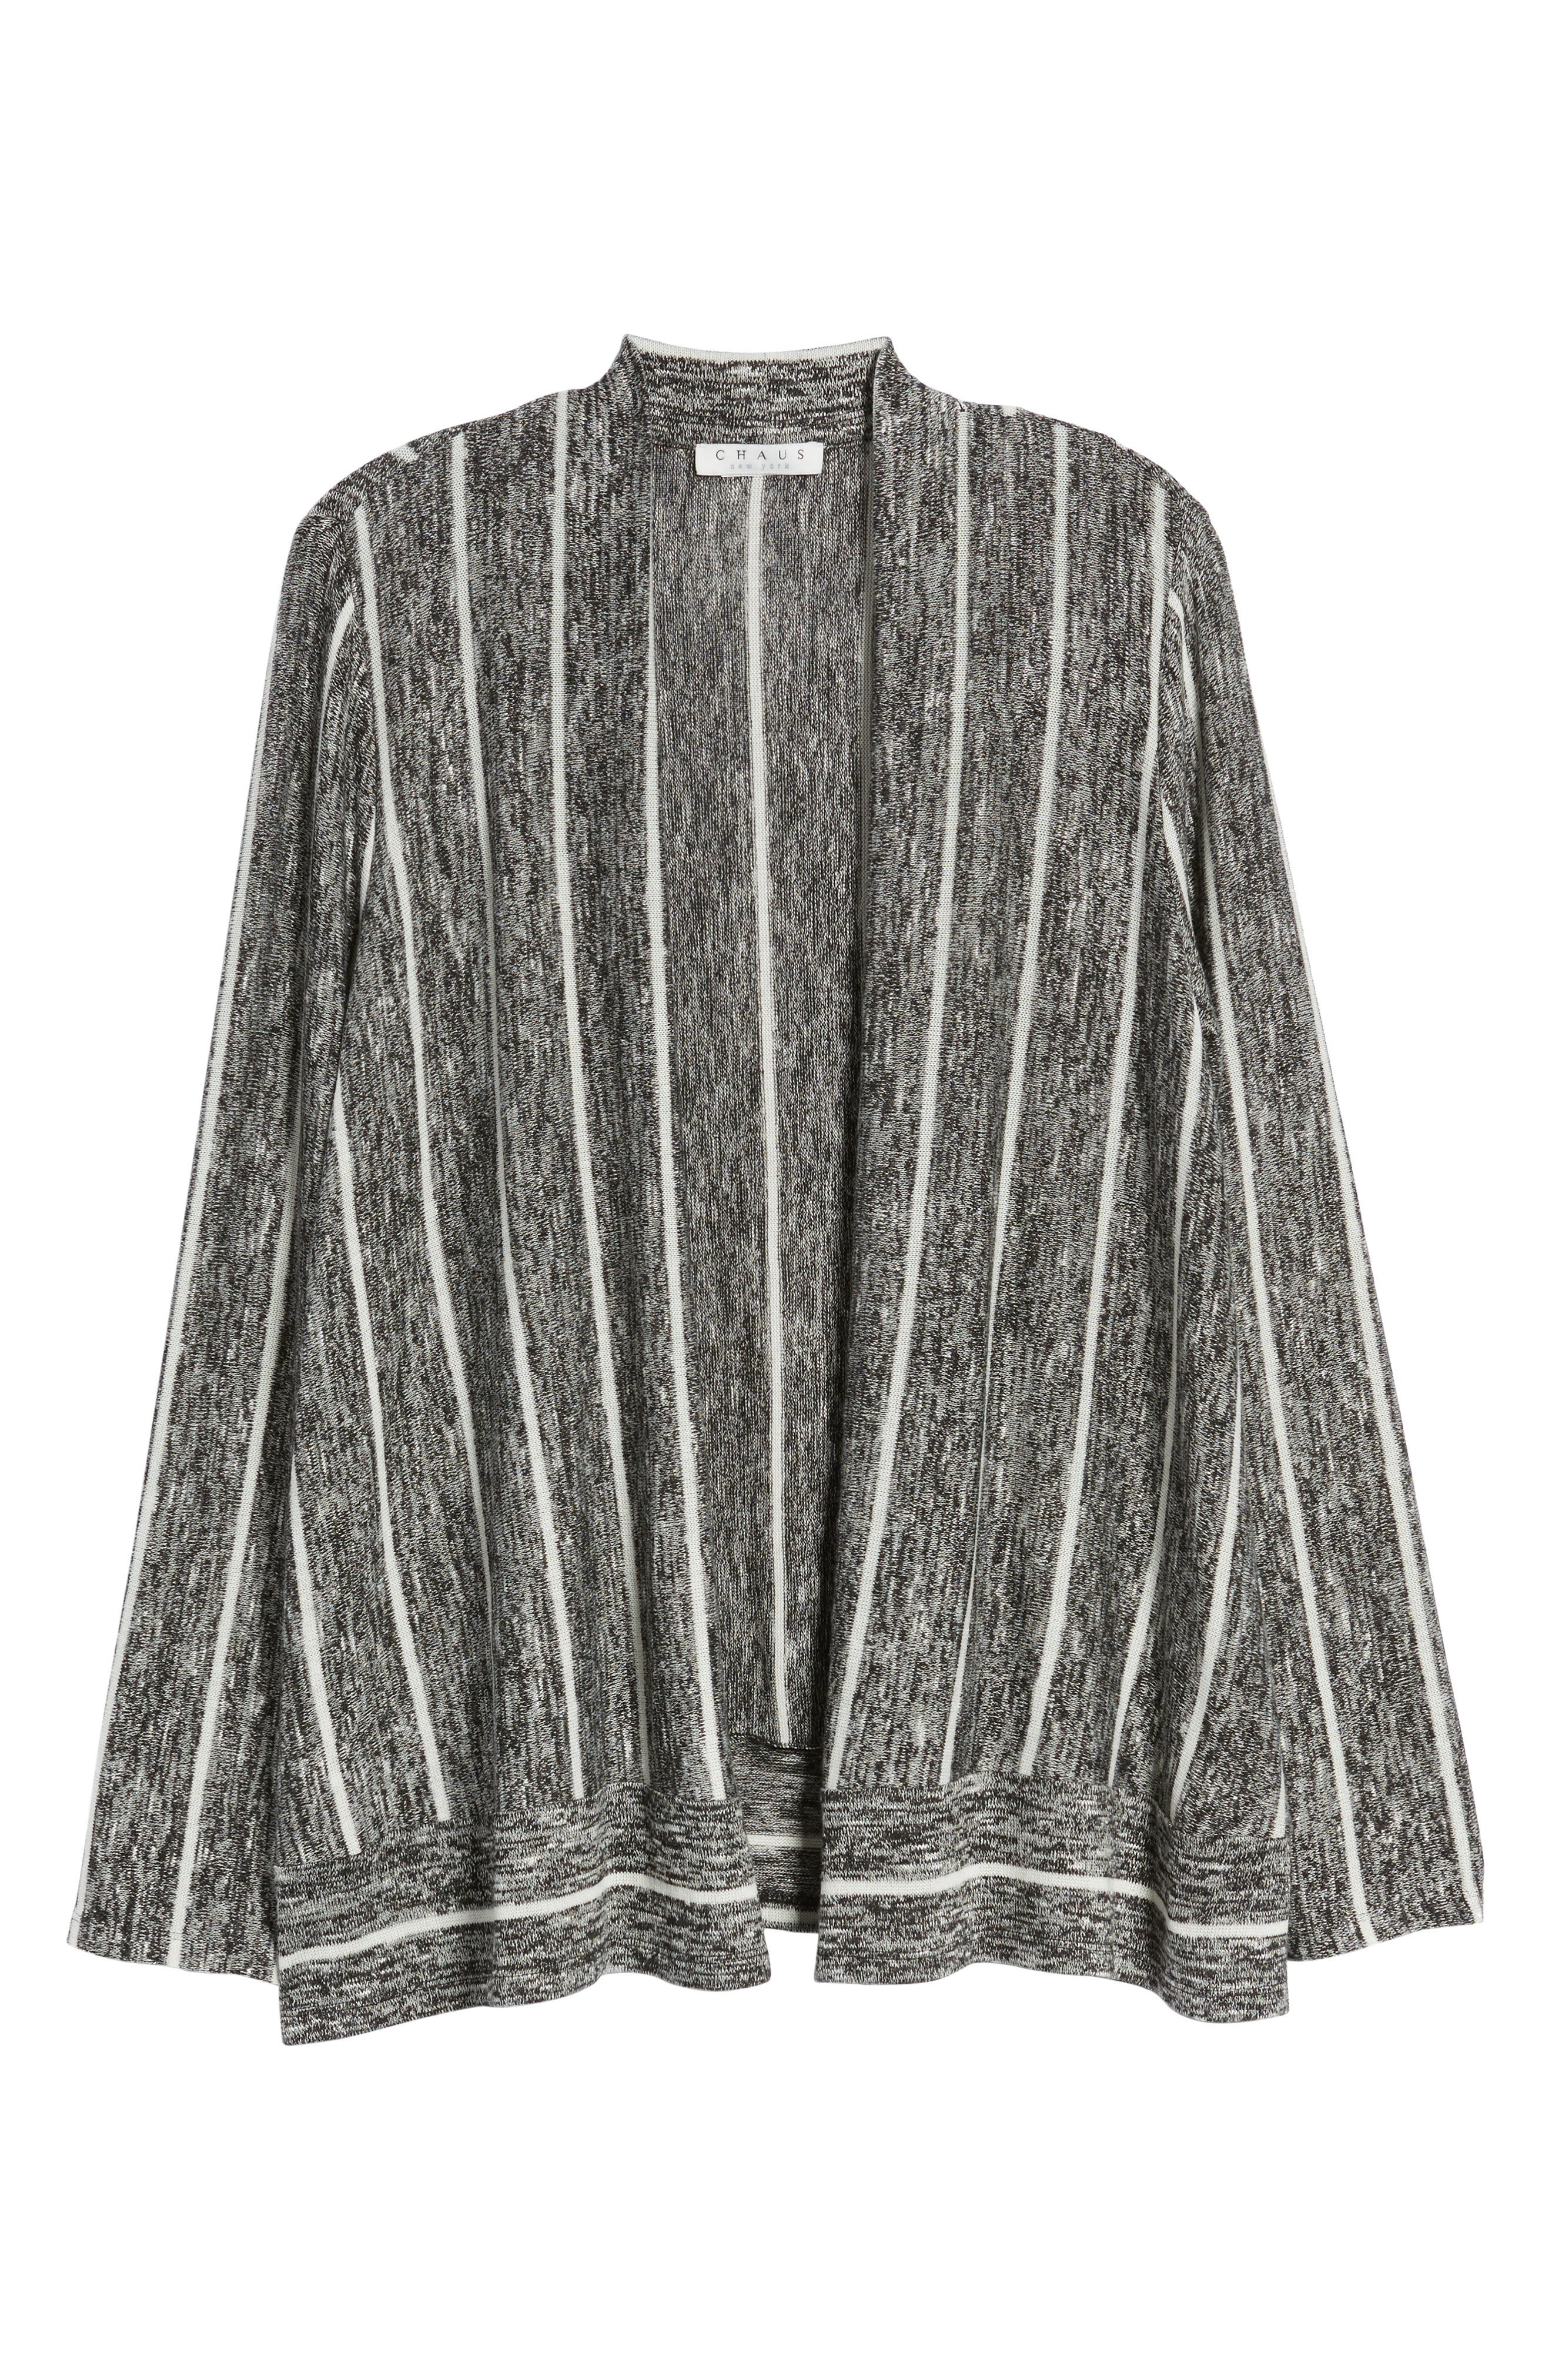 Marled Stripe Open Front Cardigan,                             Alternate thumbnail 7, color,                             060-Rich Black